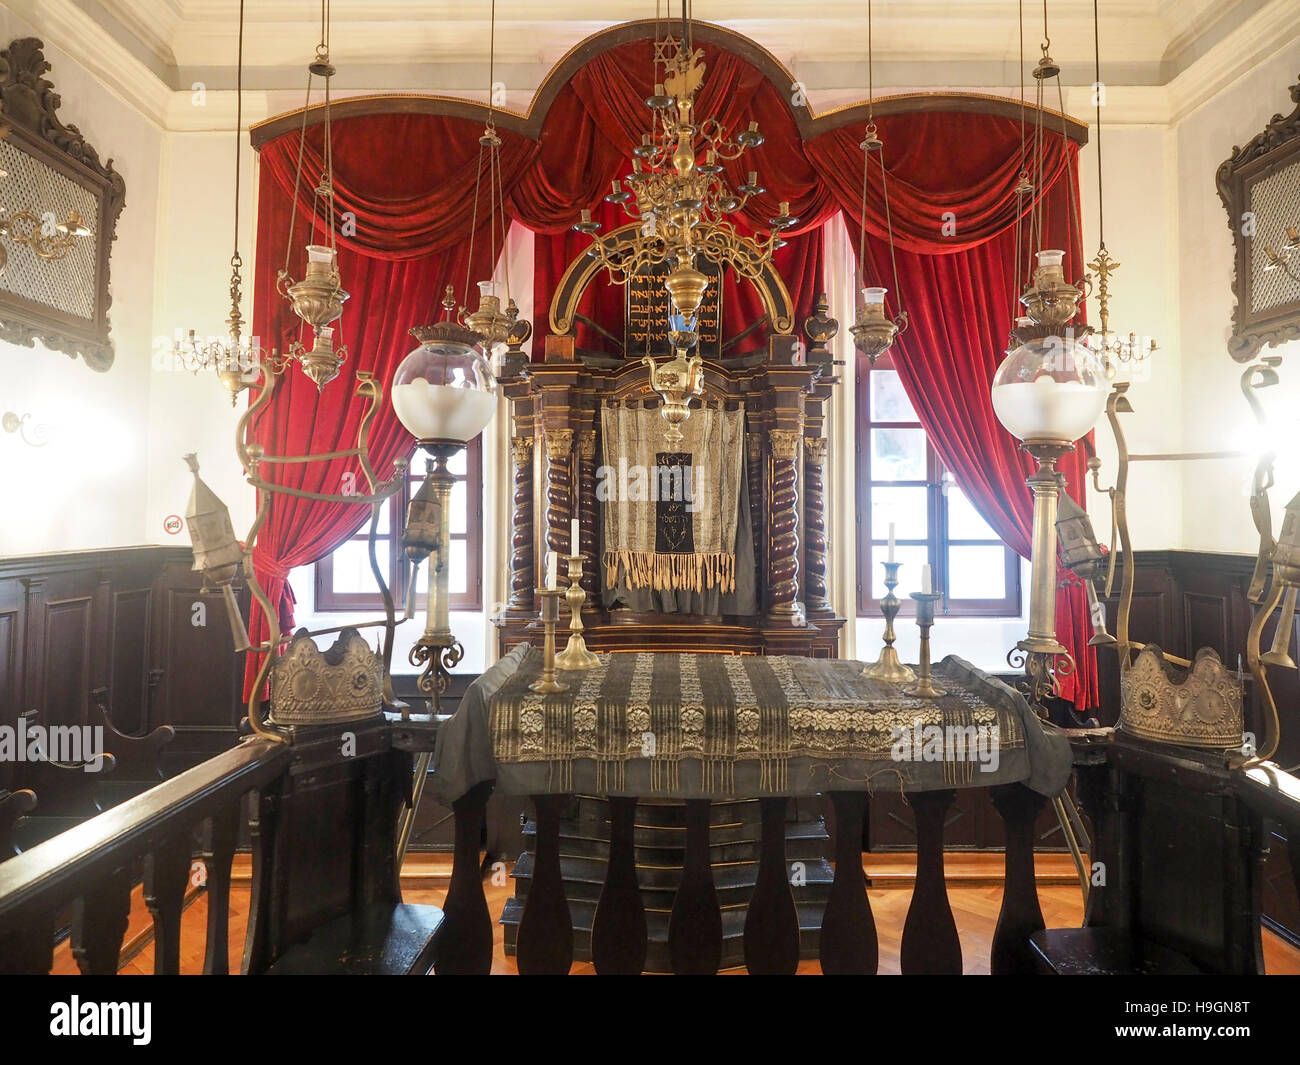 croatia dubrovnik interior of the synagogue in the walled old city